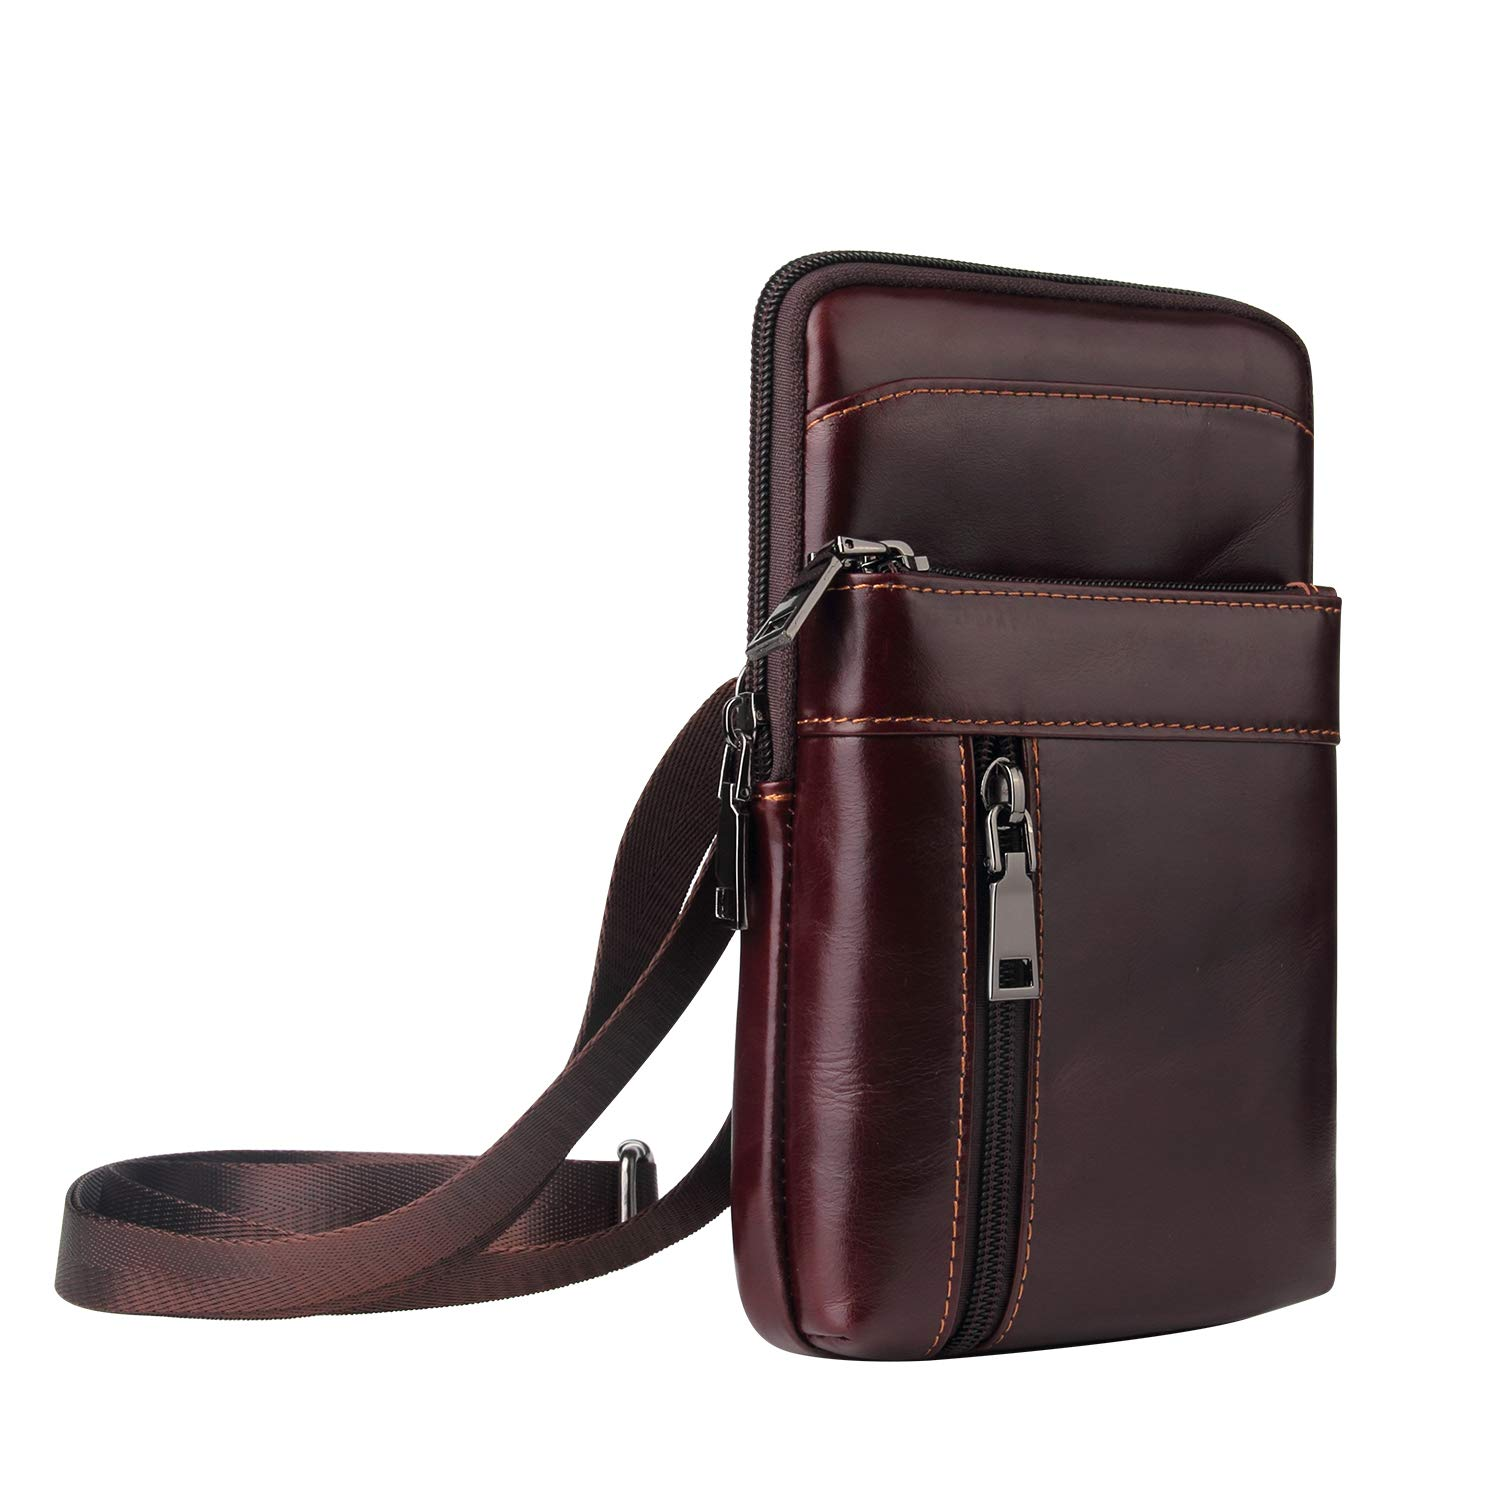 Genuine Leather Crossbody Purse Cell Phone Travel Bag Belt Holster Wallet Case for iPhone 11 Pro Max/XS Max XR, Galaxy Note 10 Plus Note 9/8 A70, LG V40 ThinQ V20 V10, Blu R2 Plus Vivo XL4